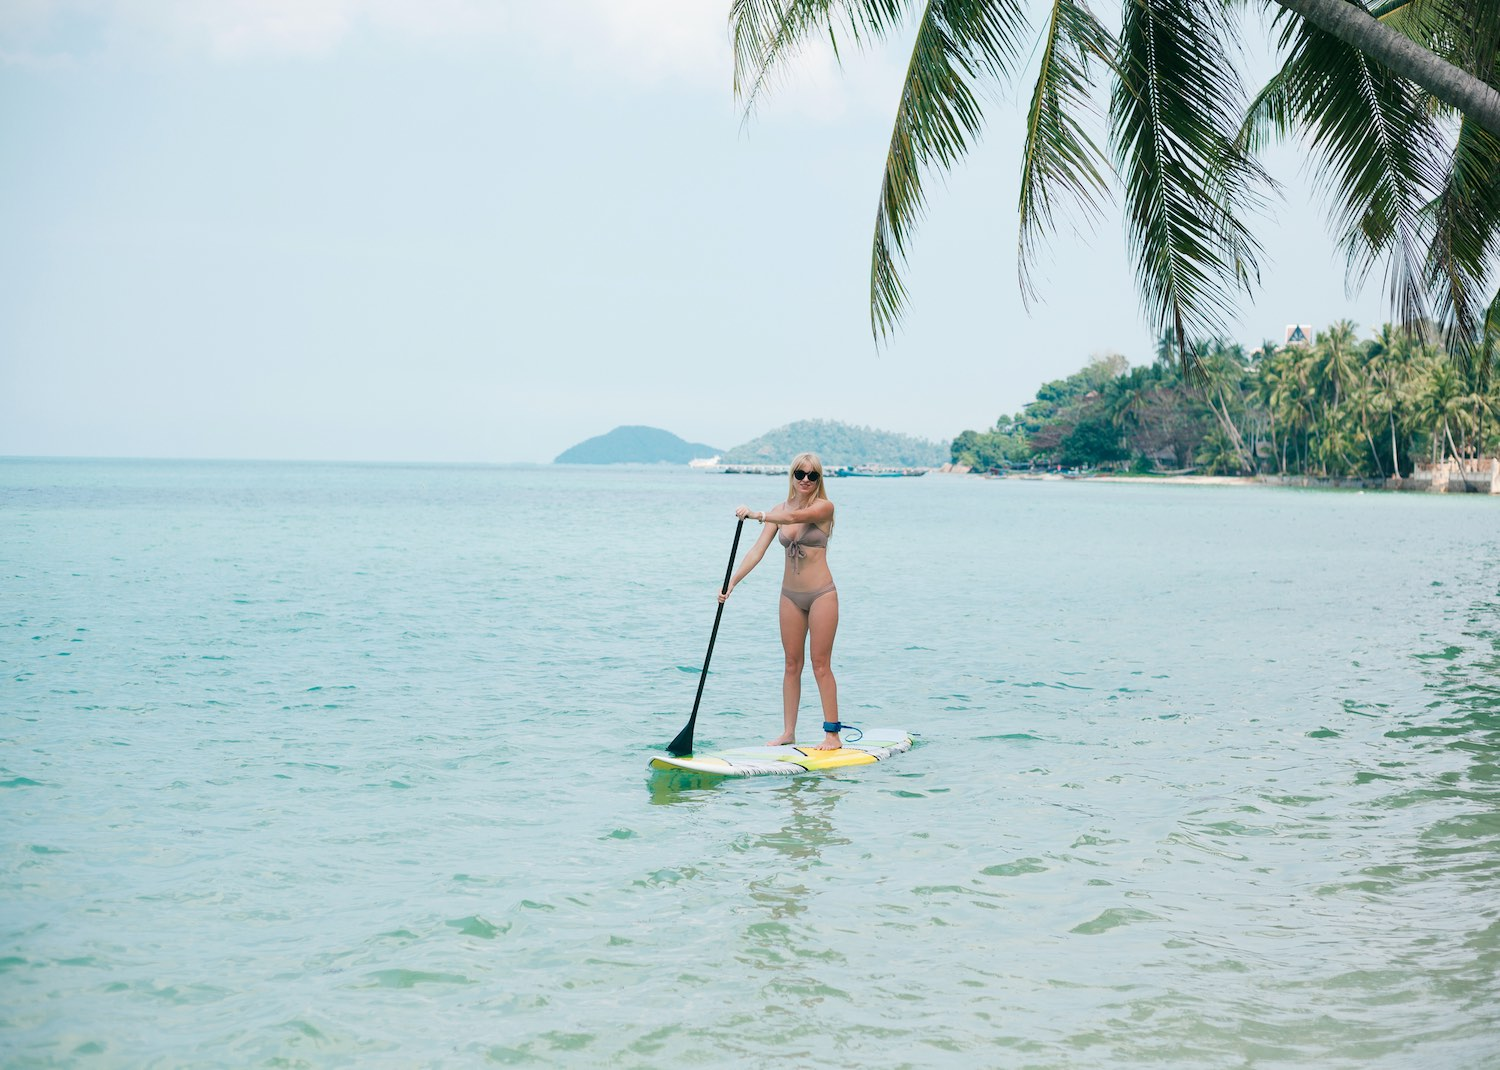 stand up paddleboard - things to do koh tao thailand